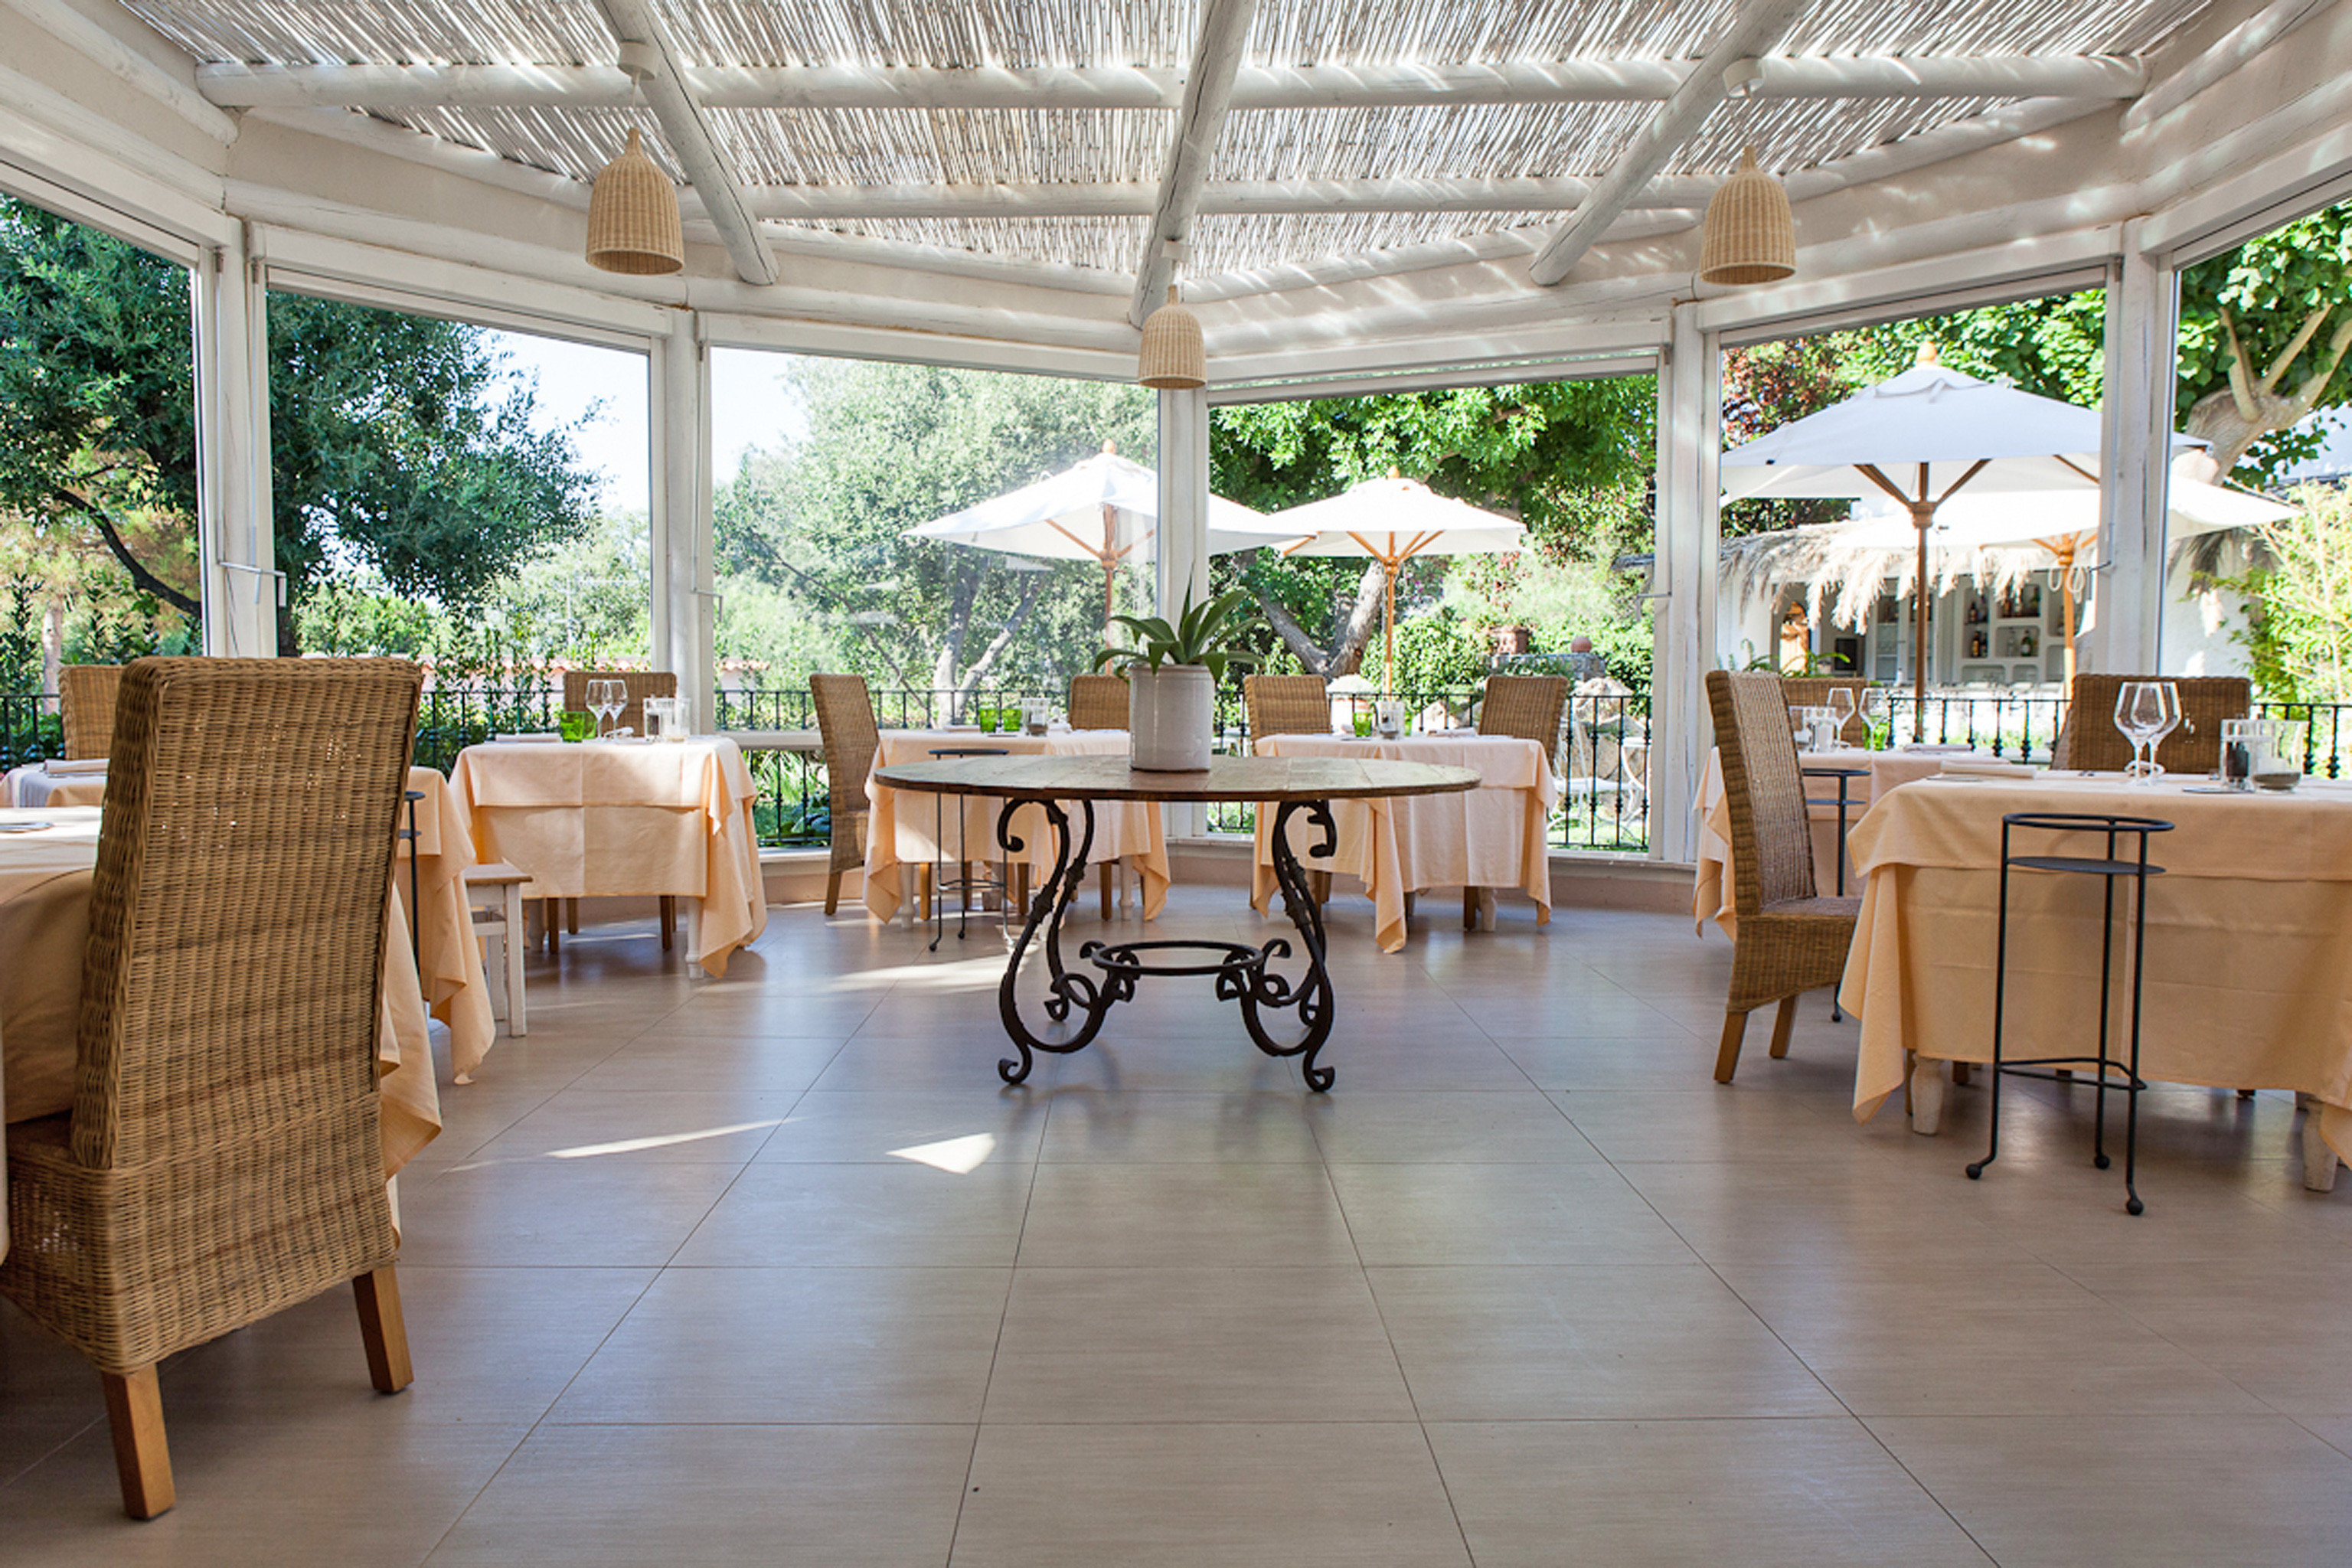 Dining Romantic chair property building Lobby Resort home porch outdoor structure Courtyard flooring restaurant condominium